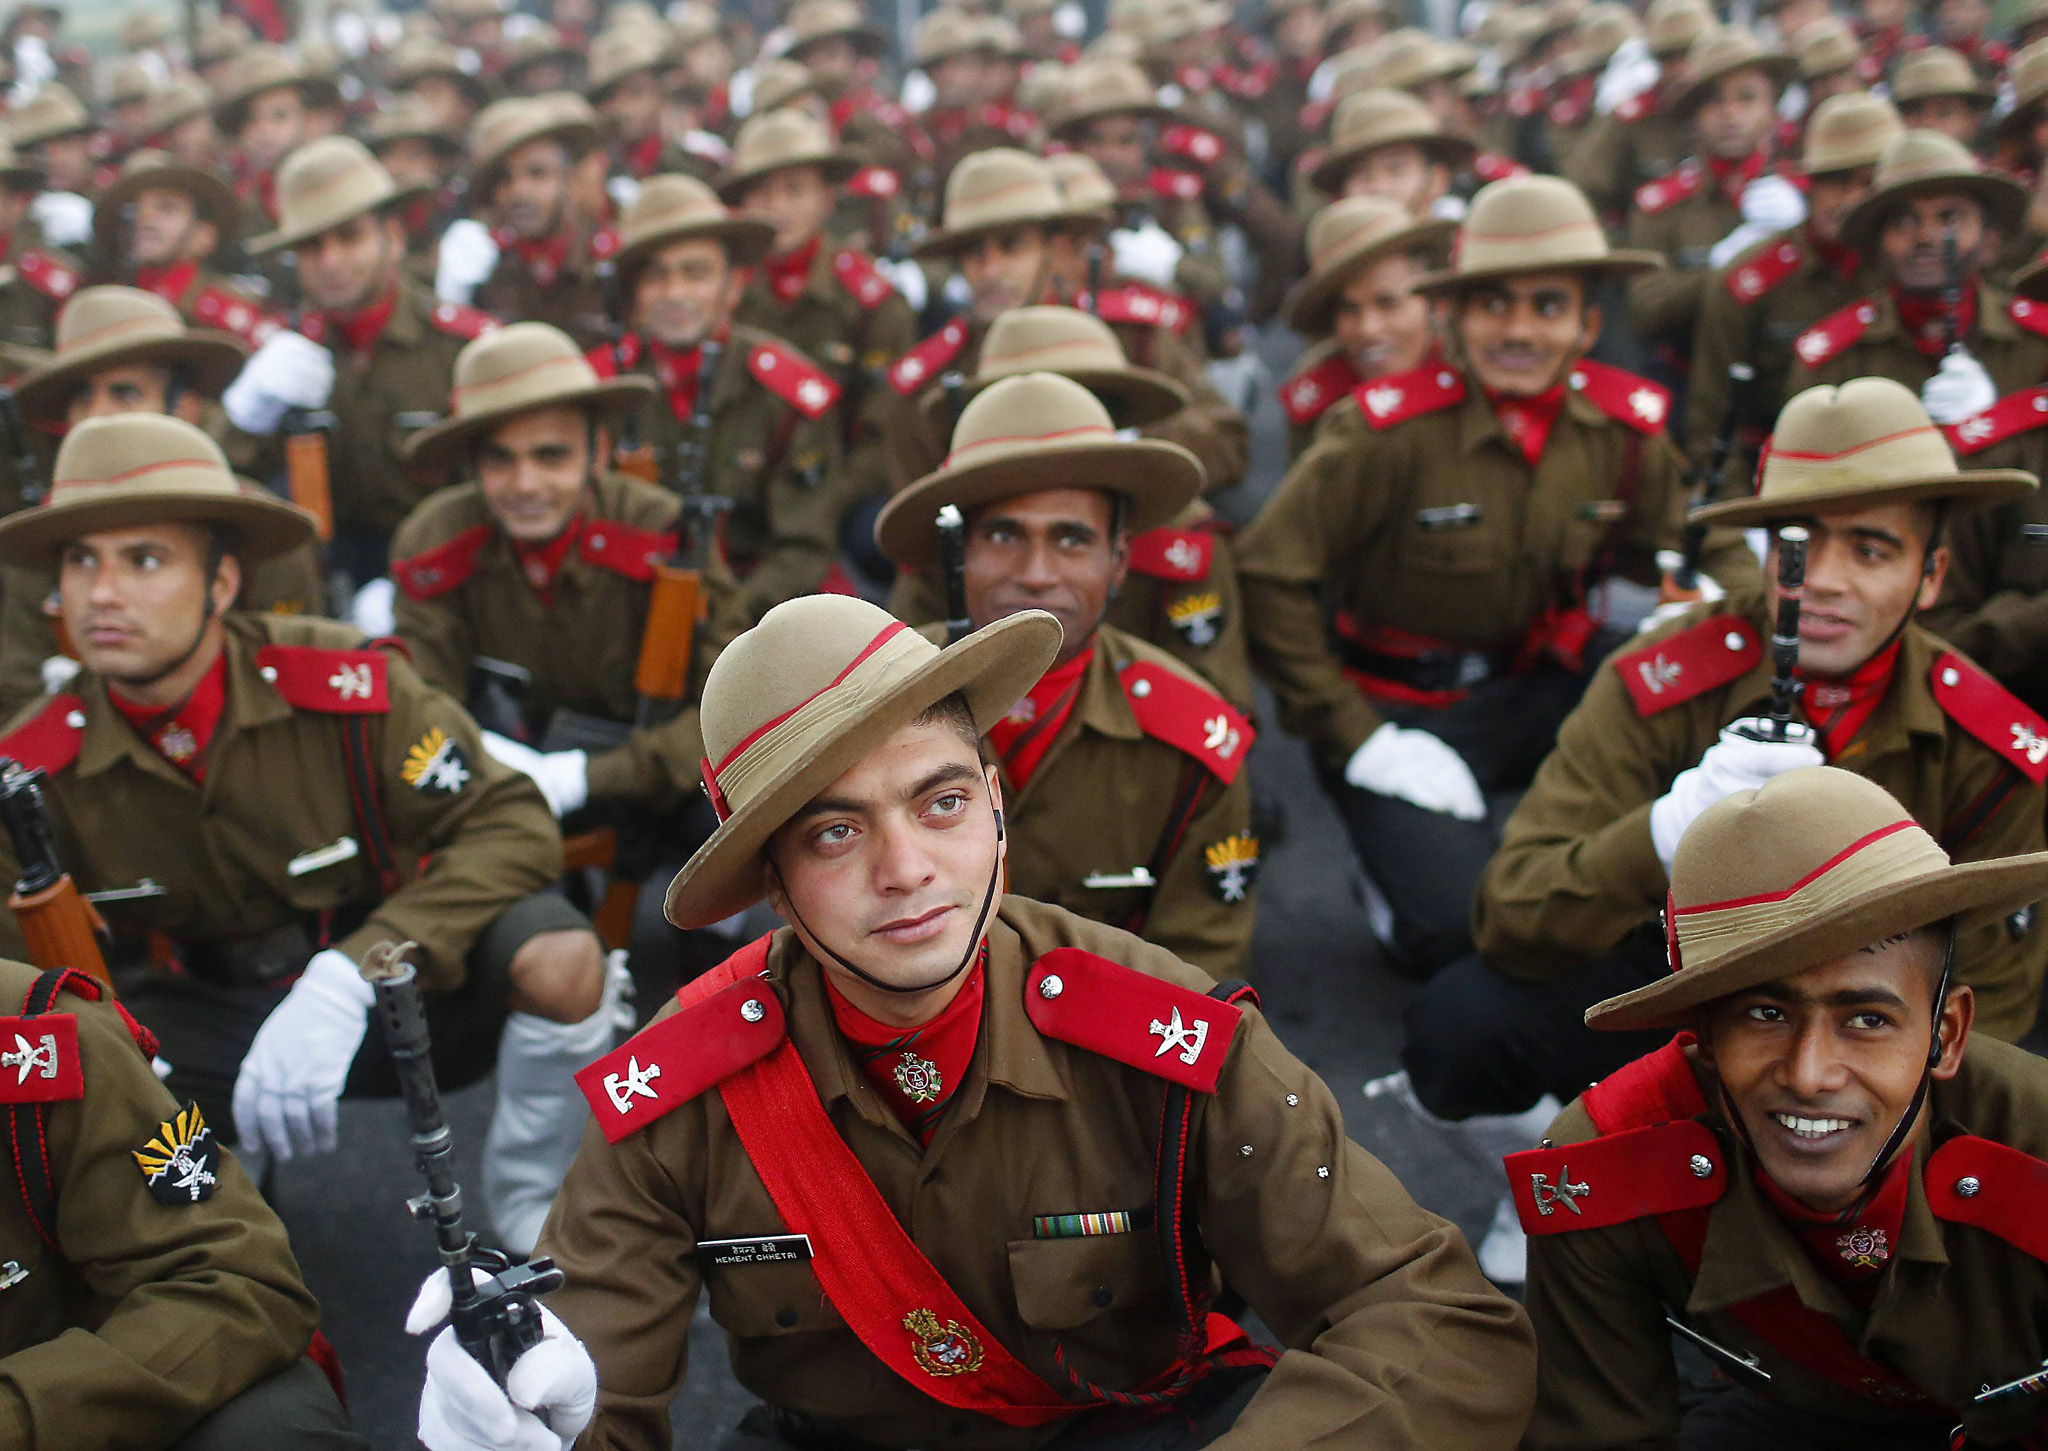 Indian soldiers rest after their rehearsal for the Republic Day parade on a cold winter morning in New Delhi...Indian soldiers rest after their rehearsal for the Republic Day parade on a cold winter morning in New Delhi January 2, 2014. India will celebrate its annual Republic Day on January 26. REUTERS/Anindito Mukherjee